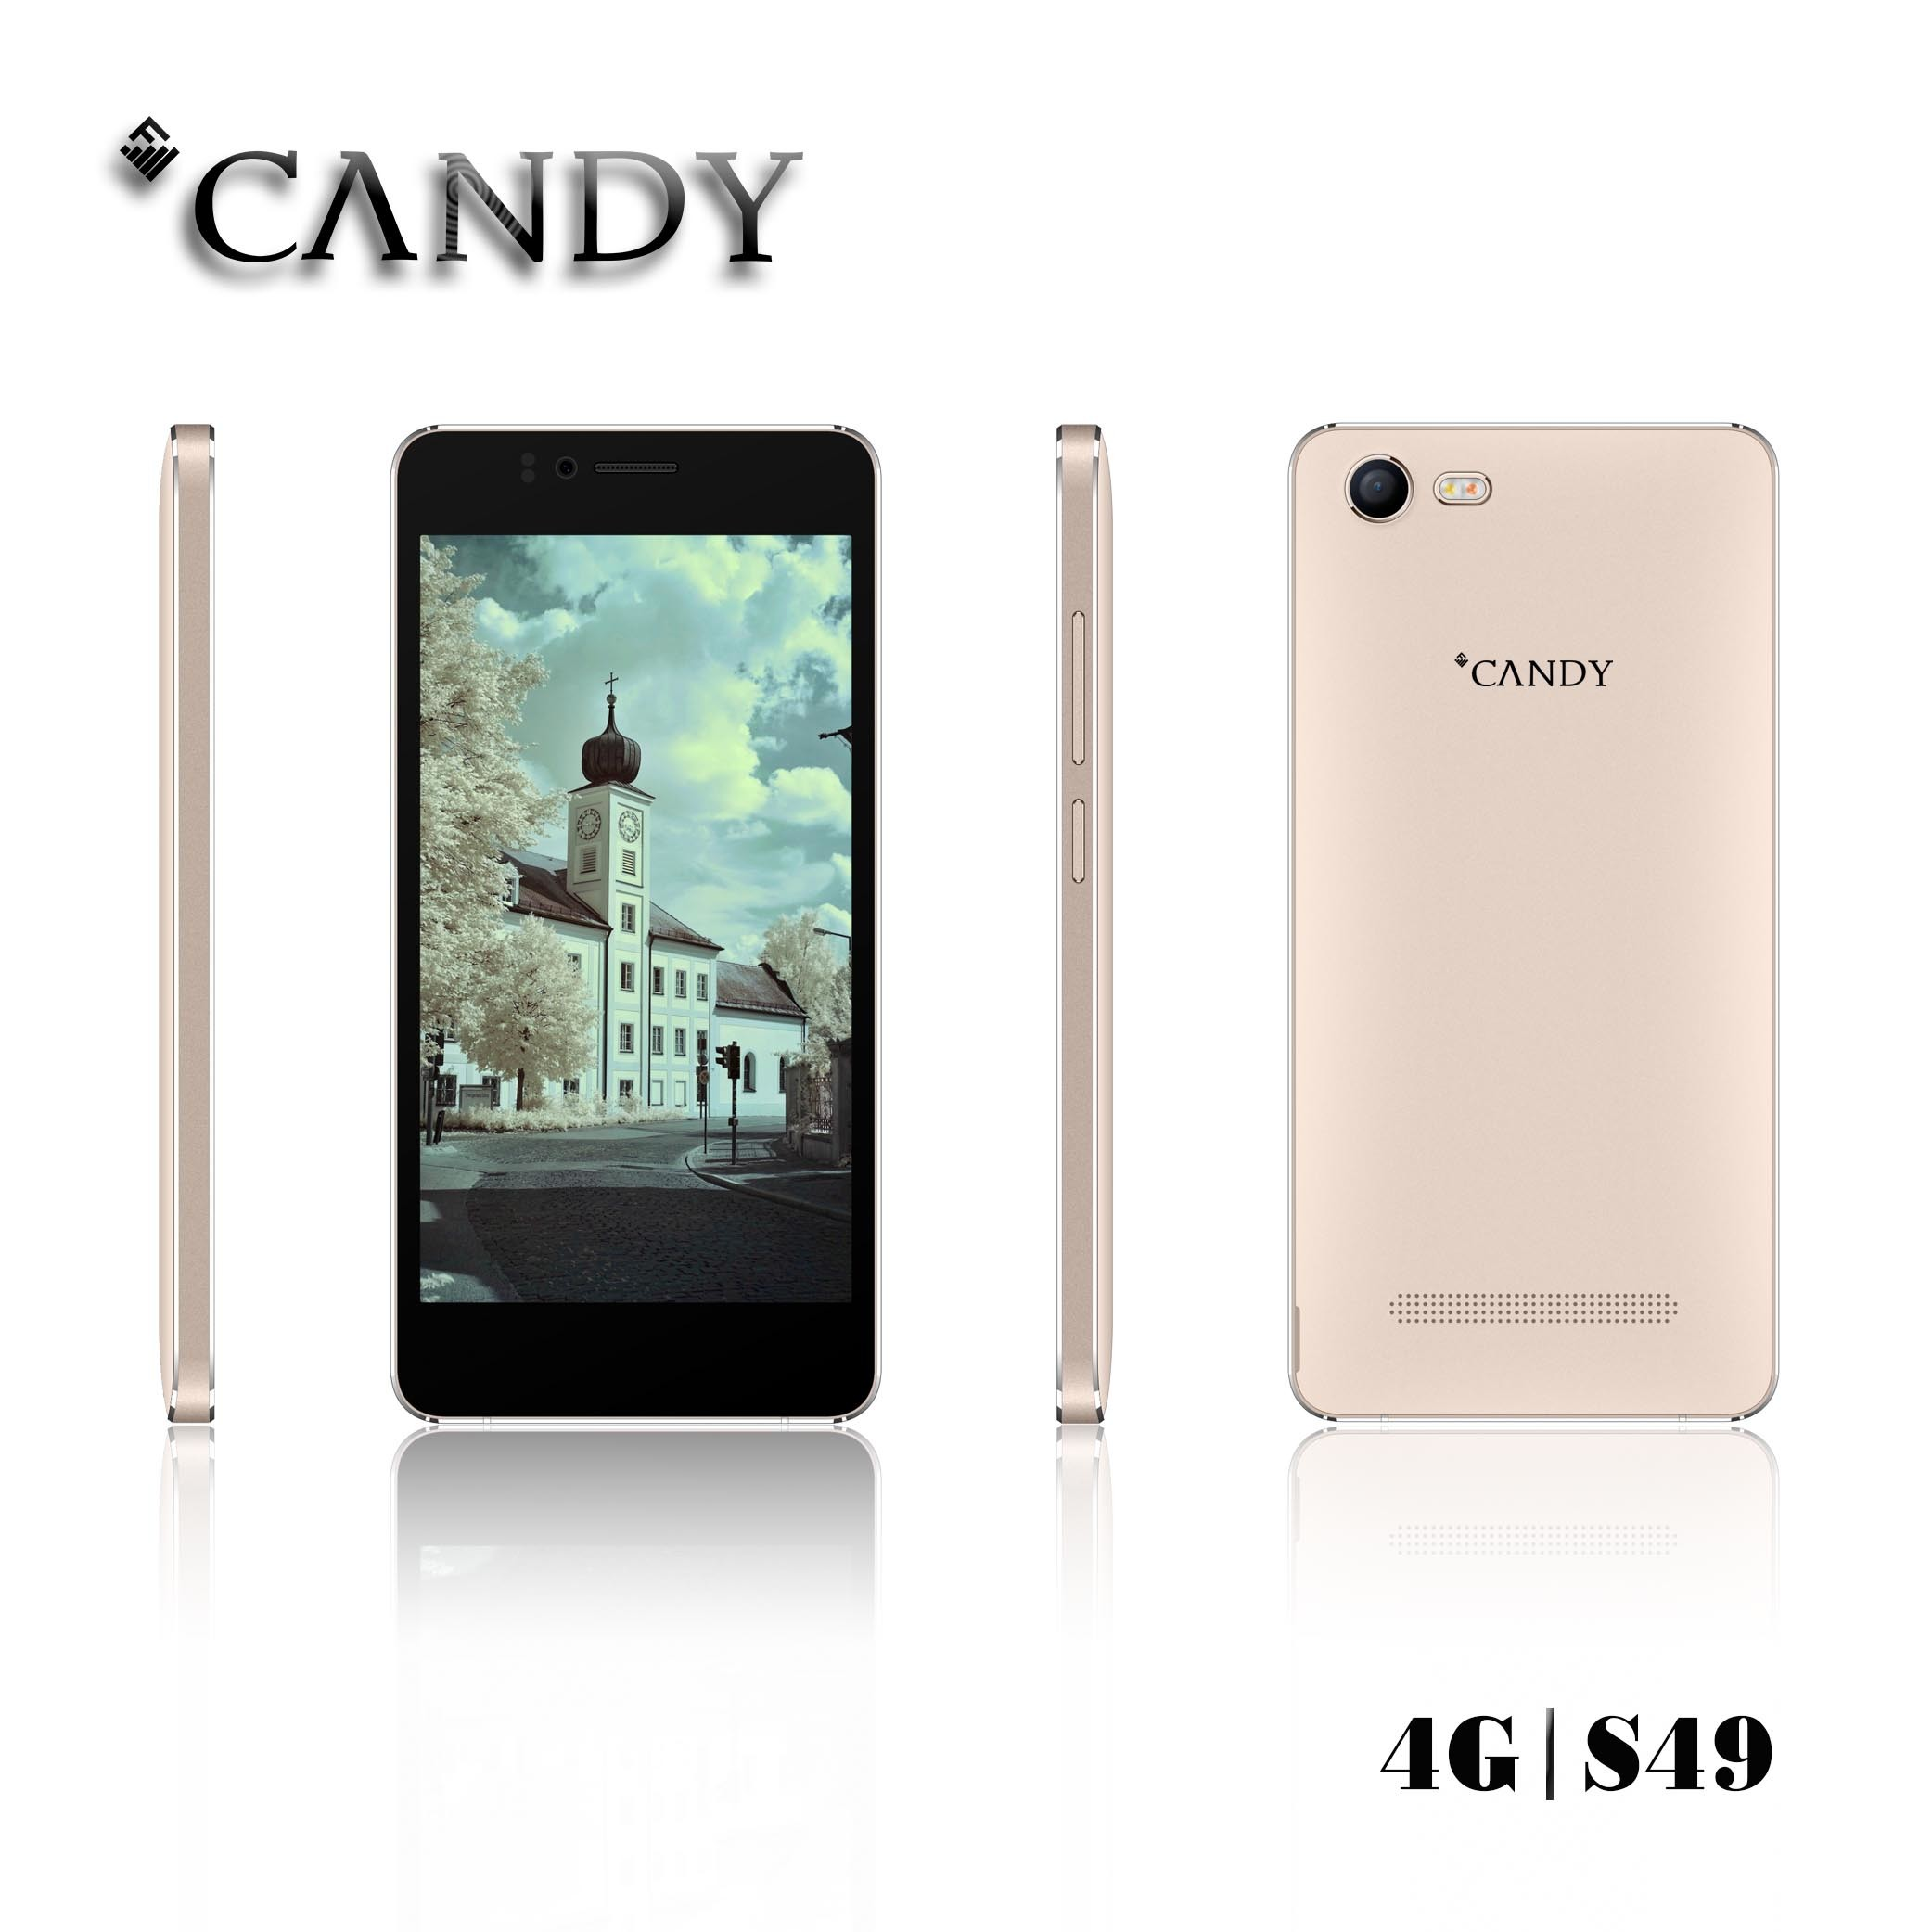 4.5 Inch Fwvga IPS 4G Lte Android6.0 Mobile Phone